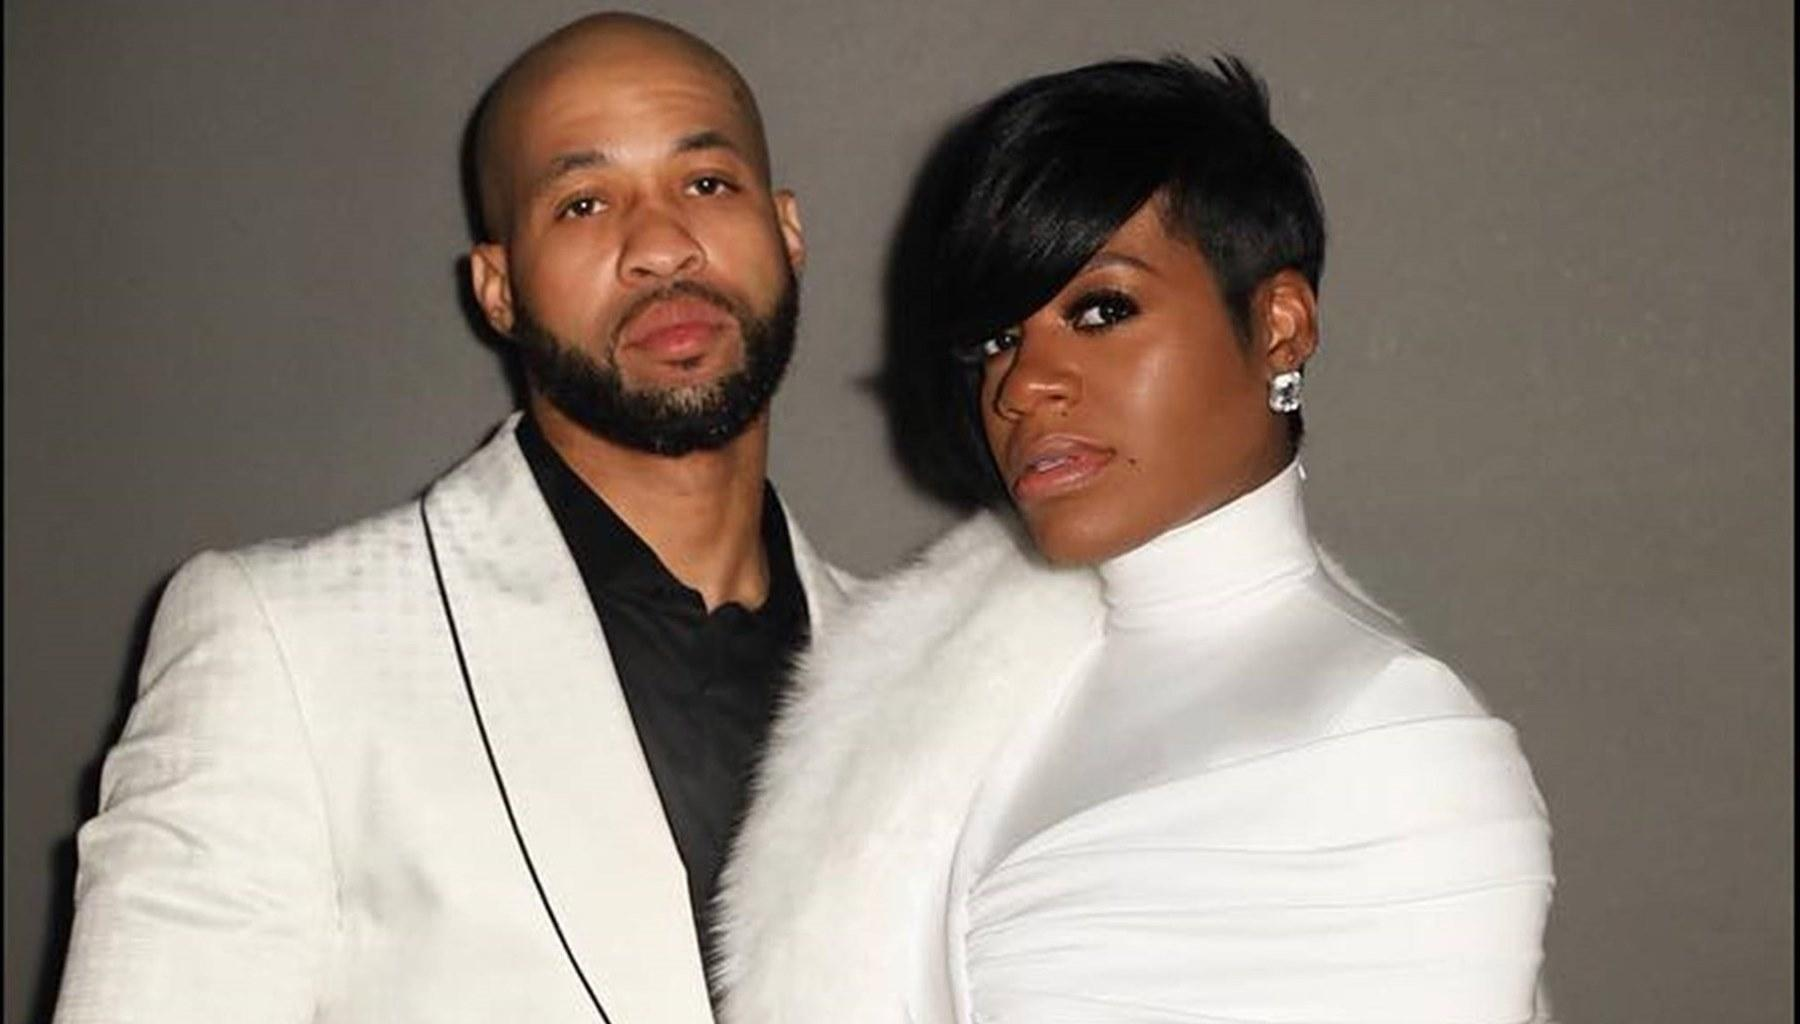 Fantasia Barrino Wins 2020 In Strapless Mini Black Dress Photos Where Here Impressive Weight Loss Is Visible More Than Ever